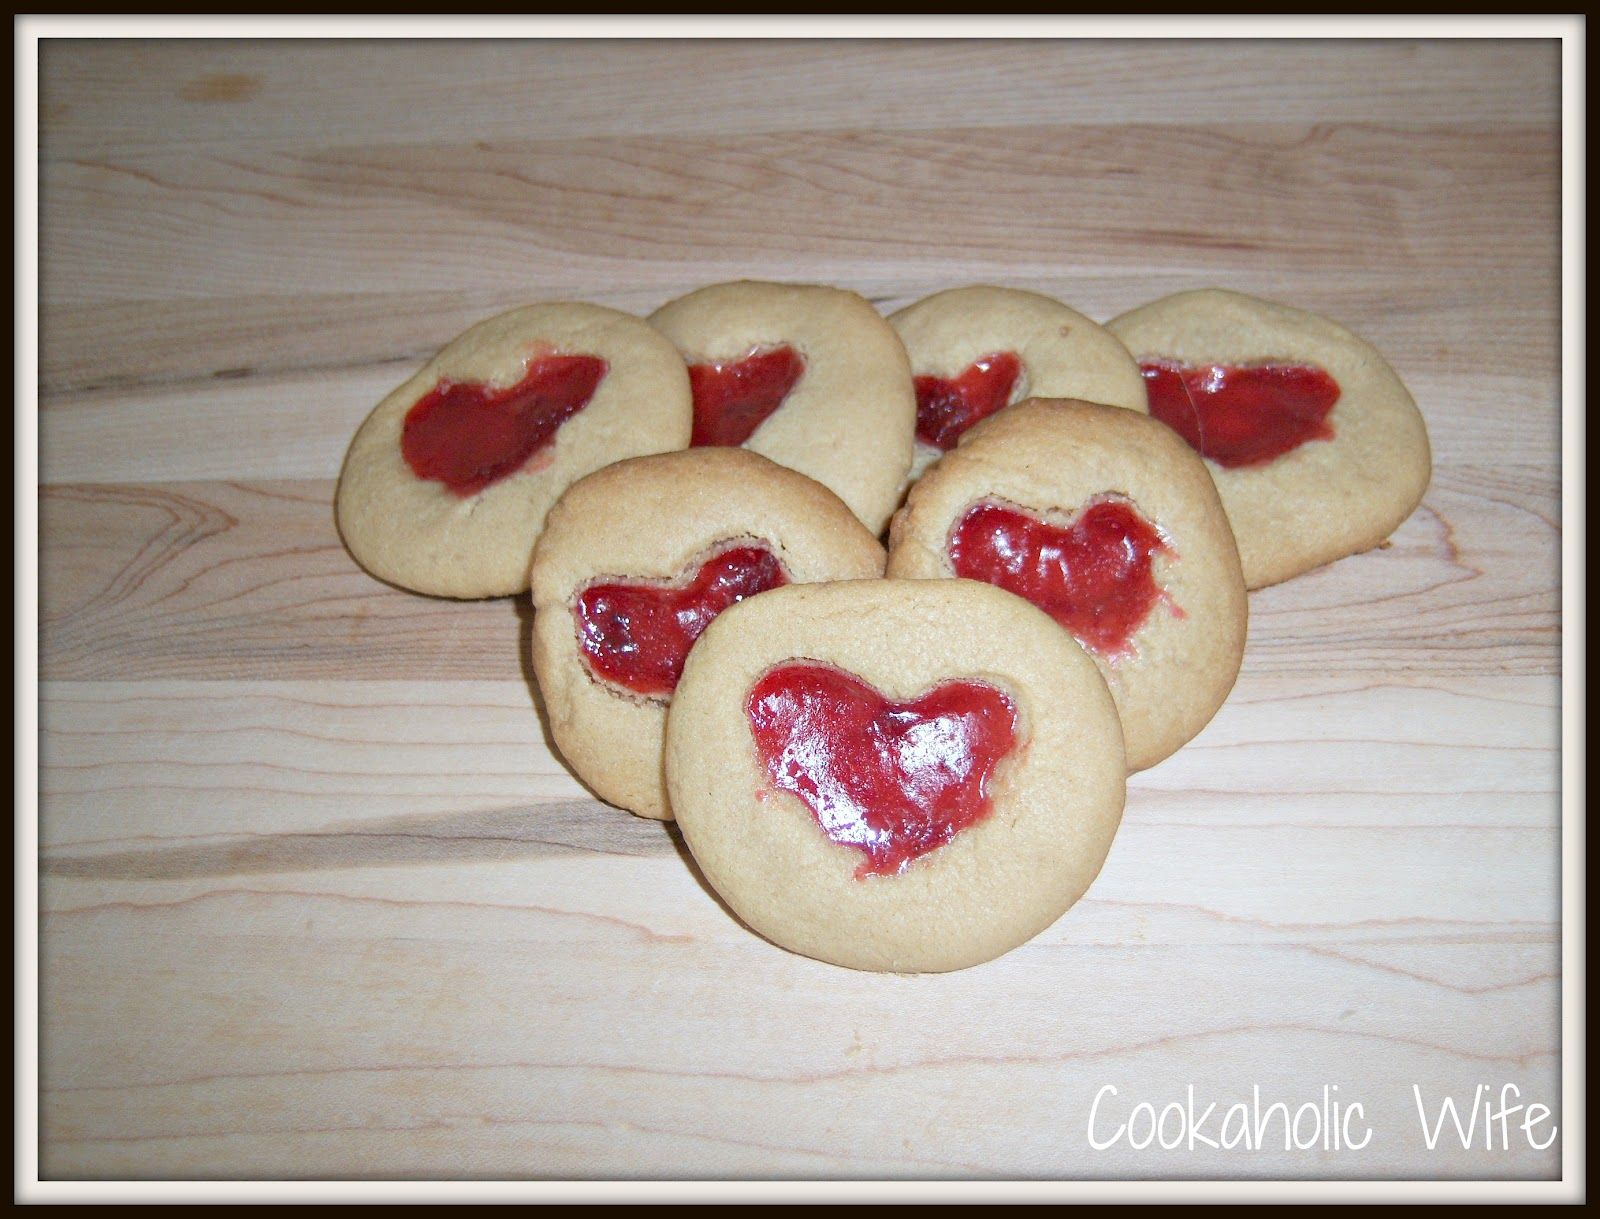 Peanut Butter and Jelly Heart Cookies